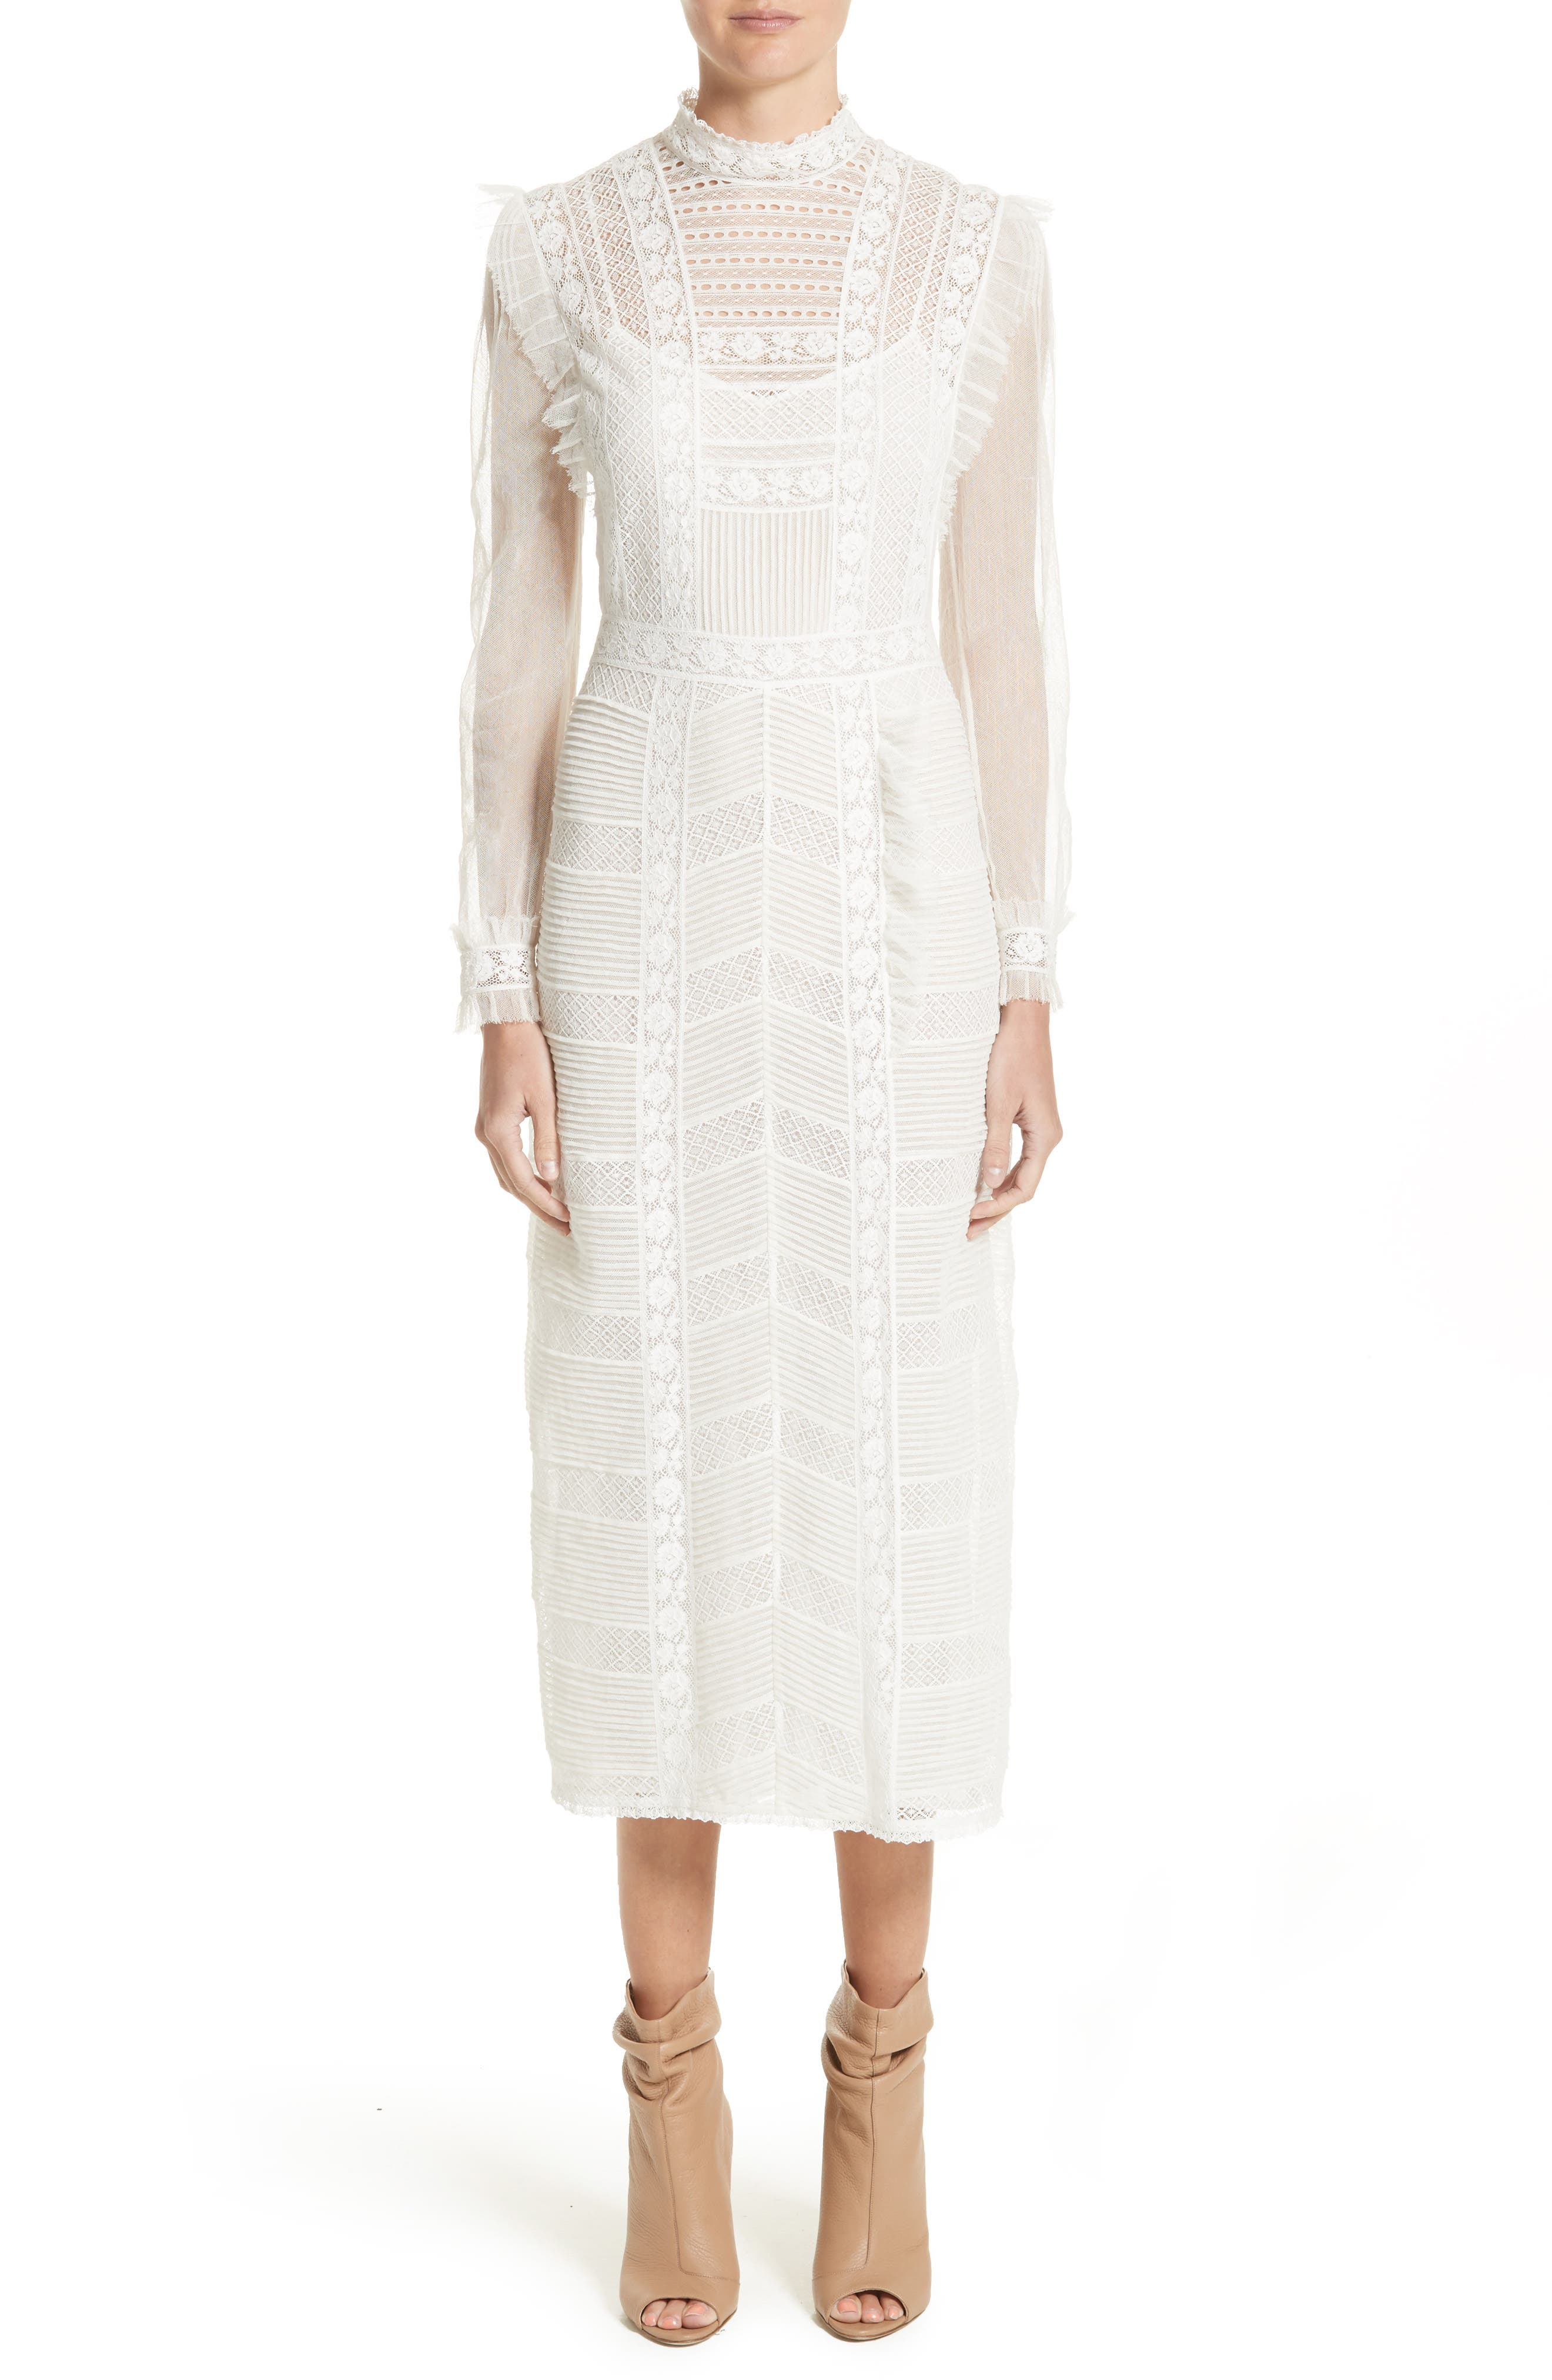 Alternate Image 1 Selected - Burberry Chanella Lace Midi Dress